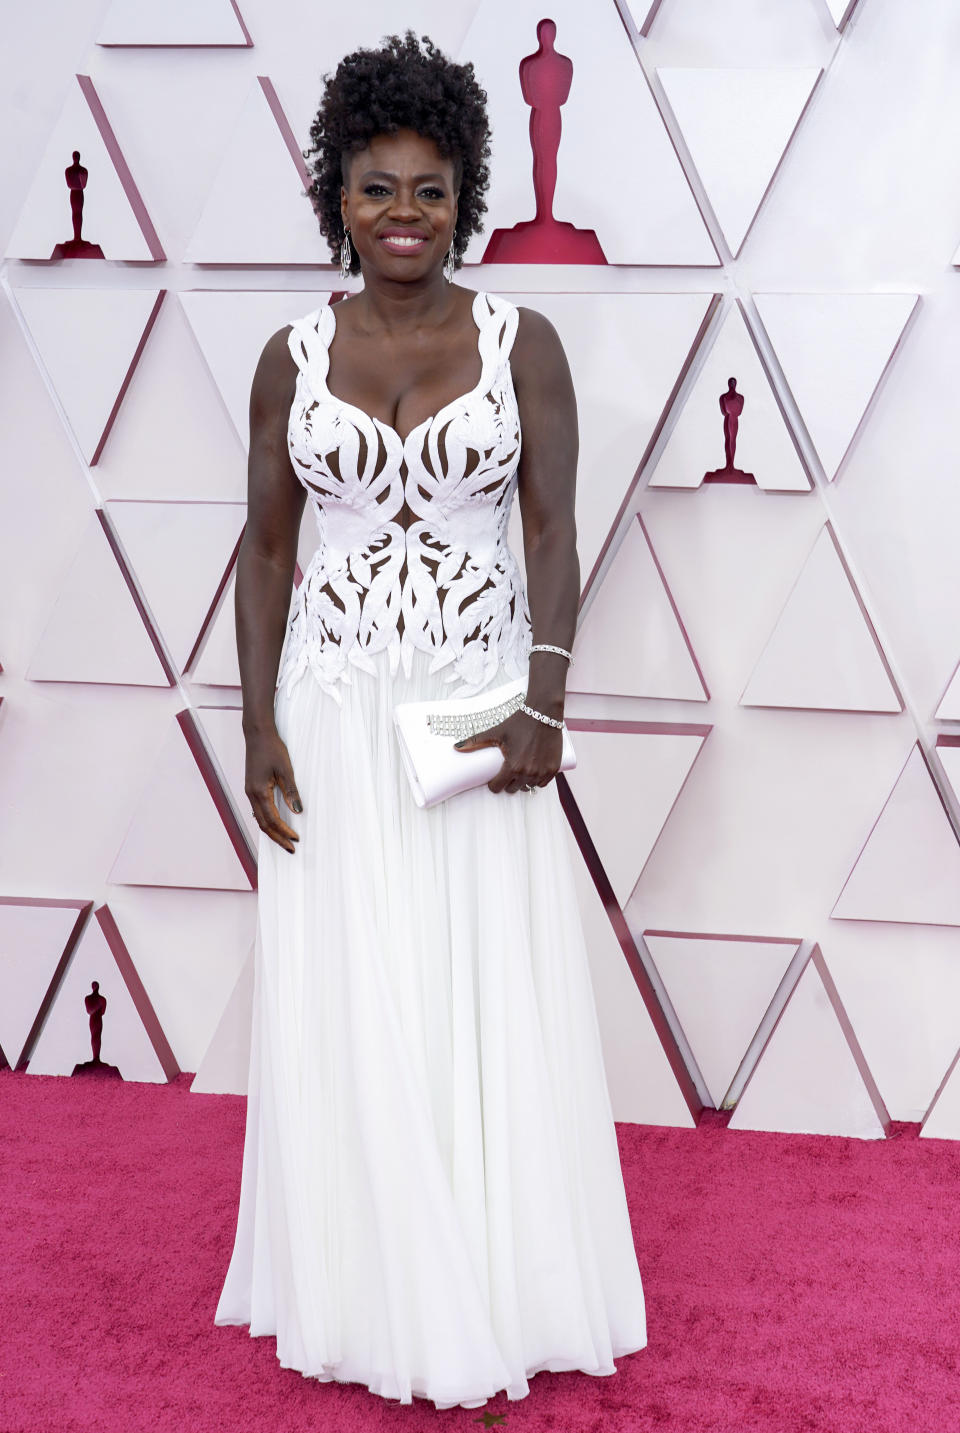 LOS ANGELES, CALIFORNIA – APRIL 25: Viola Davis attends the 93rd Annual Academy Awards at Union Station on April 25, 2021 in Los Angeles, California. (Photo by Chris Pizzello-Pool/Getty Images)